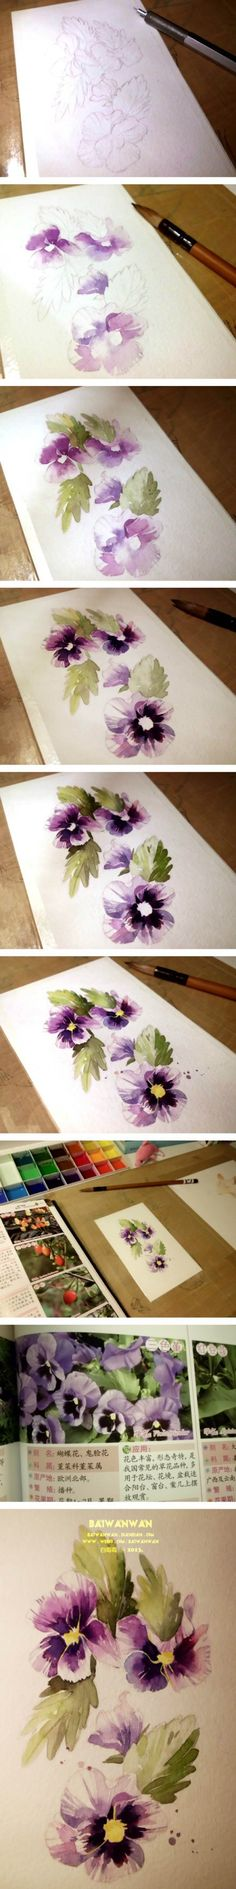 20 Delicate Colorful Watercolor Flower Painting Tutorials In… Watercolor Tips, Watercolour Tutorials, Watercolor Techniques, Watercolour Painting, Art Techniques, Watercolor Flowers, Watercolours, Drawing Flowers, Painting Flowers